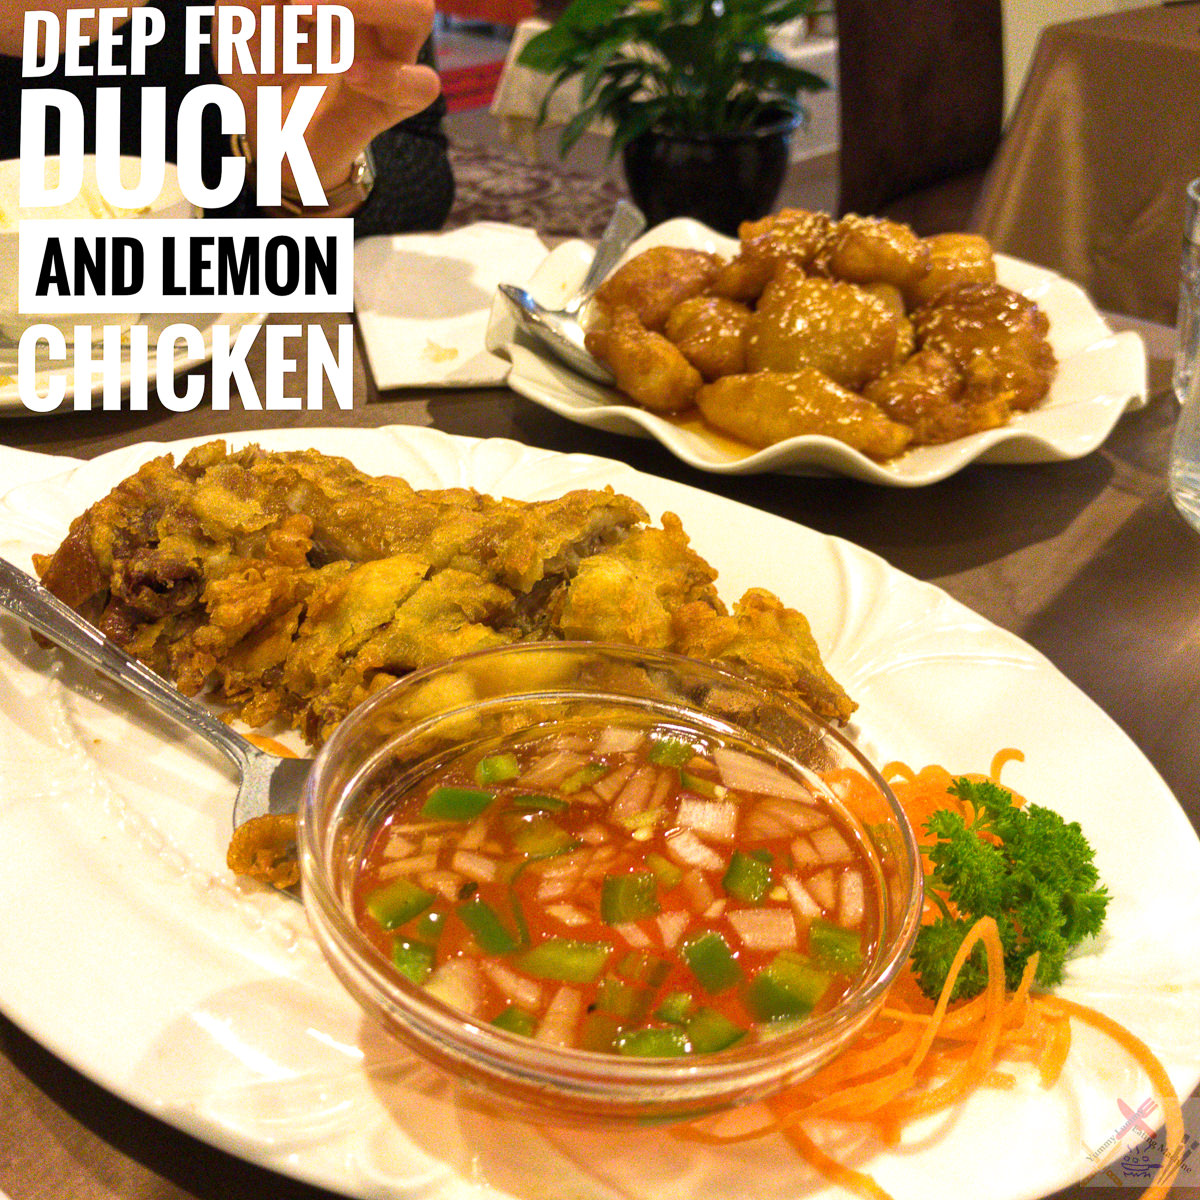 Deep fried duck and lemon chicken from Taste of China Gary Lum